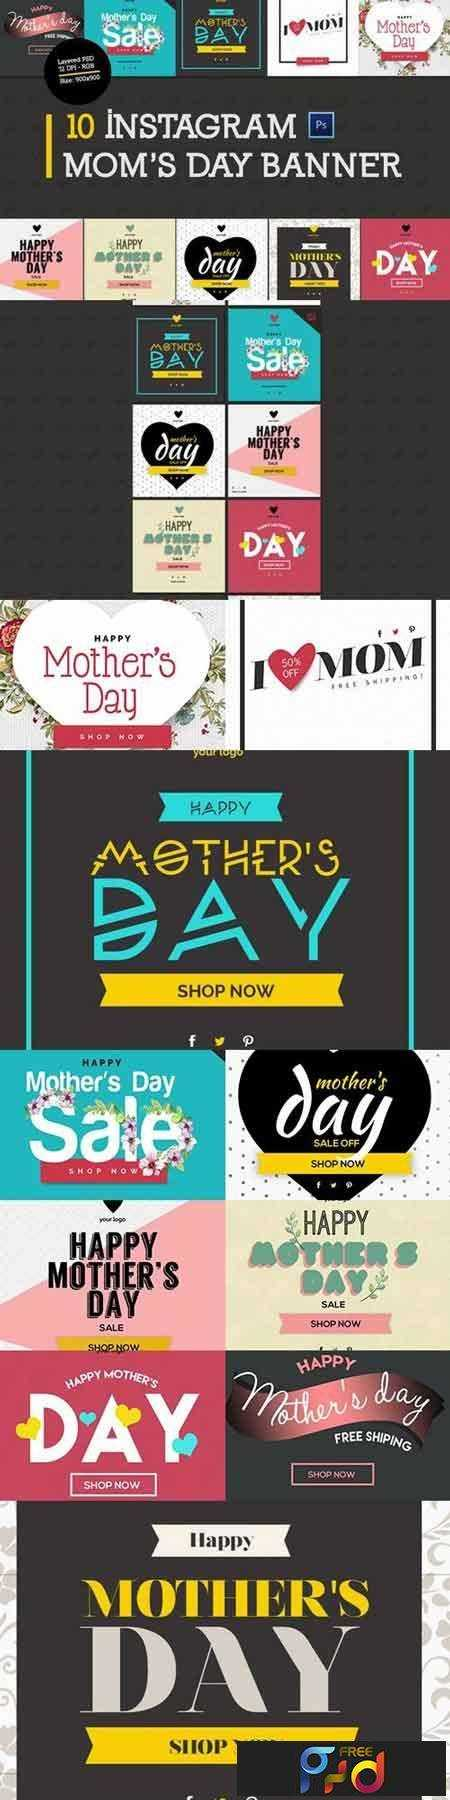 freepsdvn-com_1463384694_10-mothers-day-instagram-banners-658463